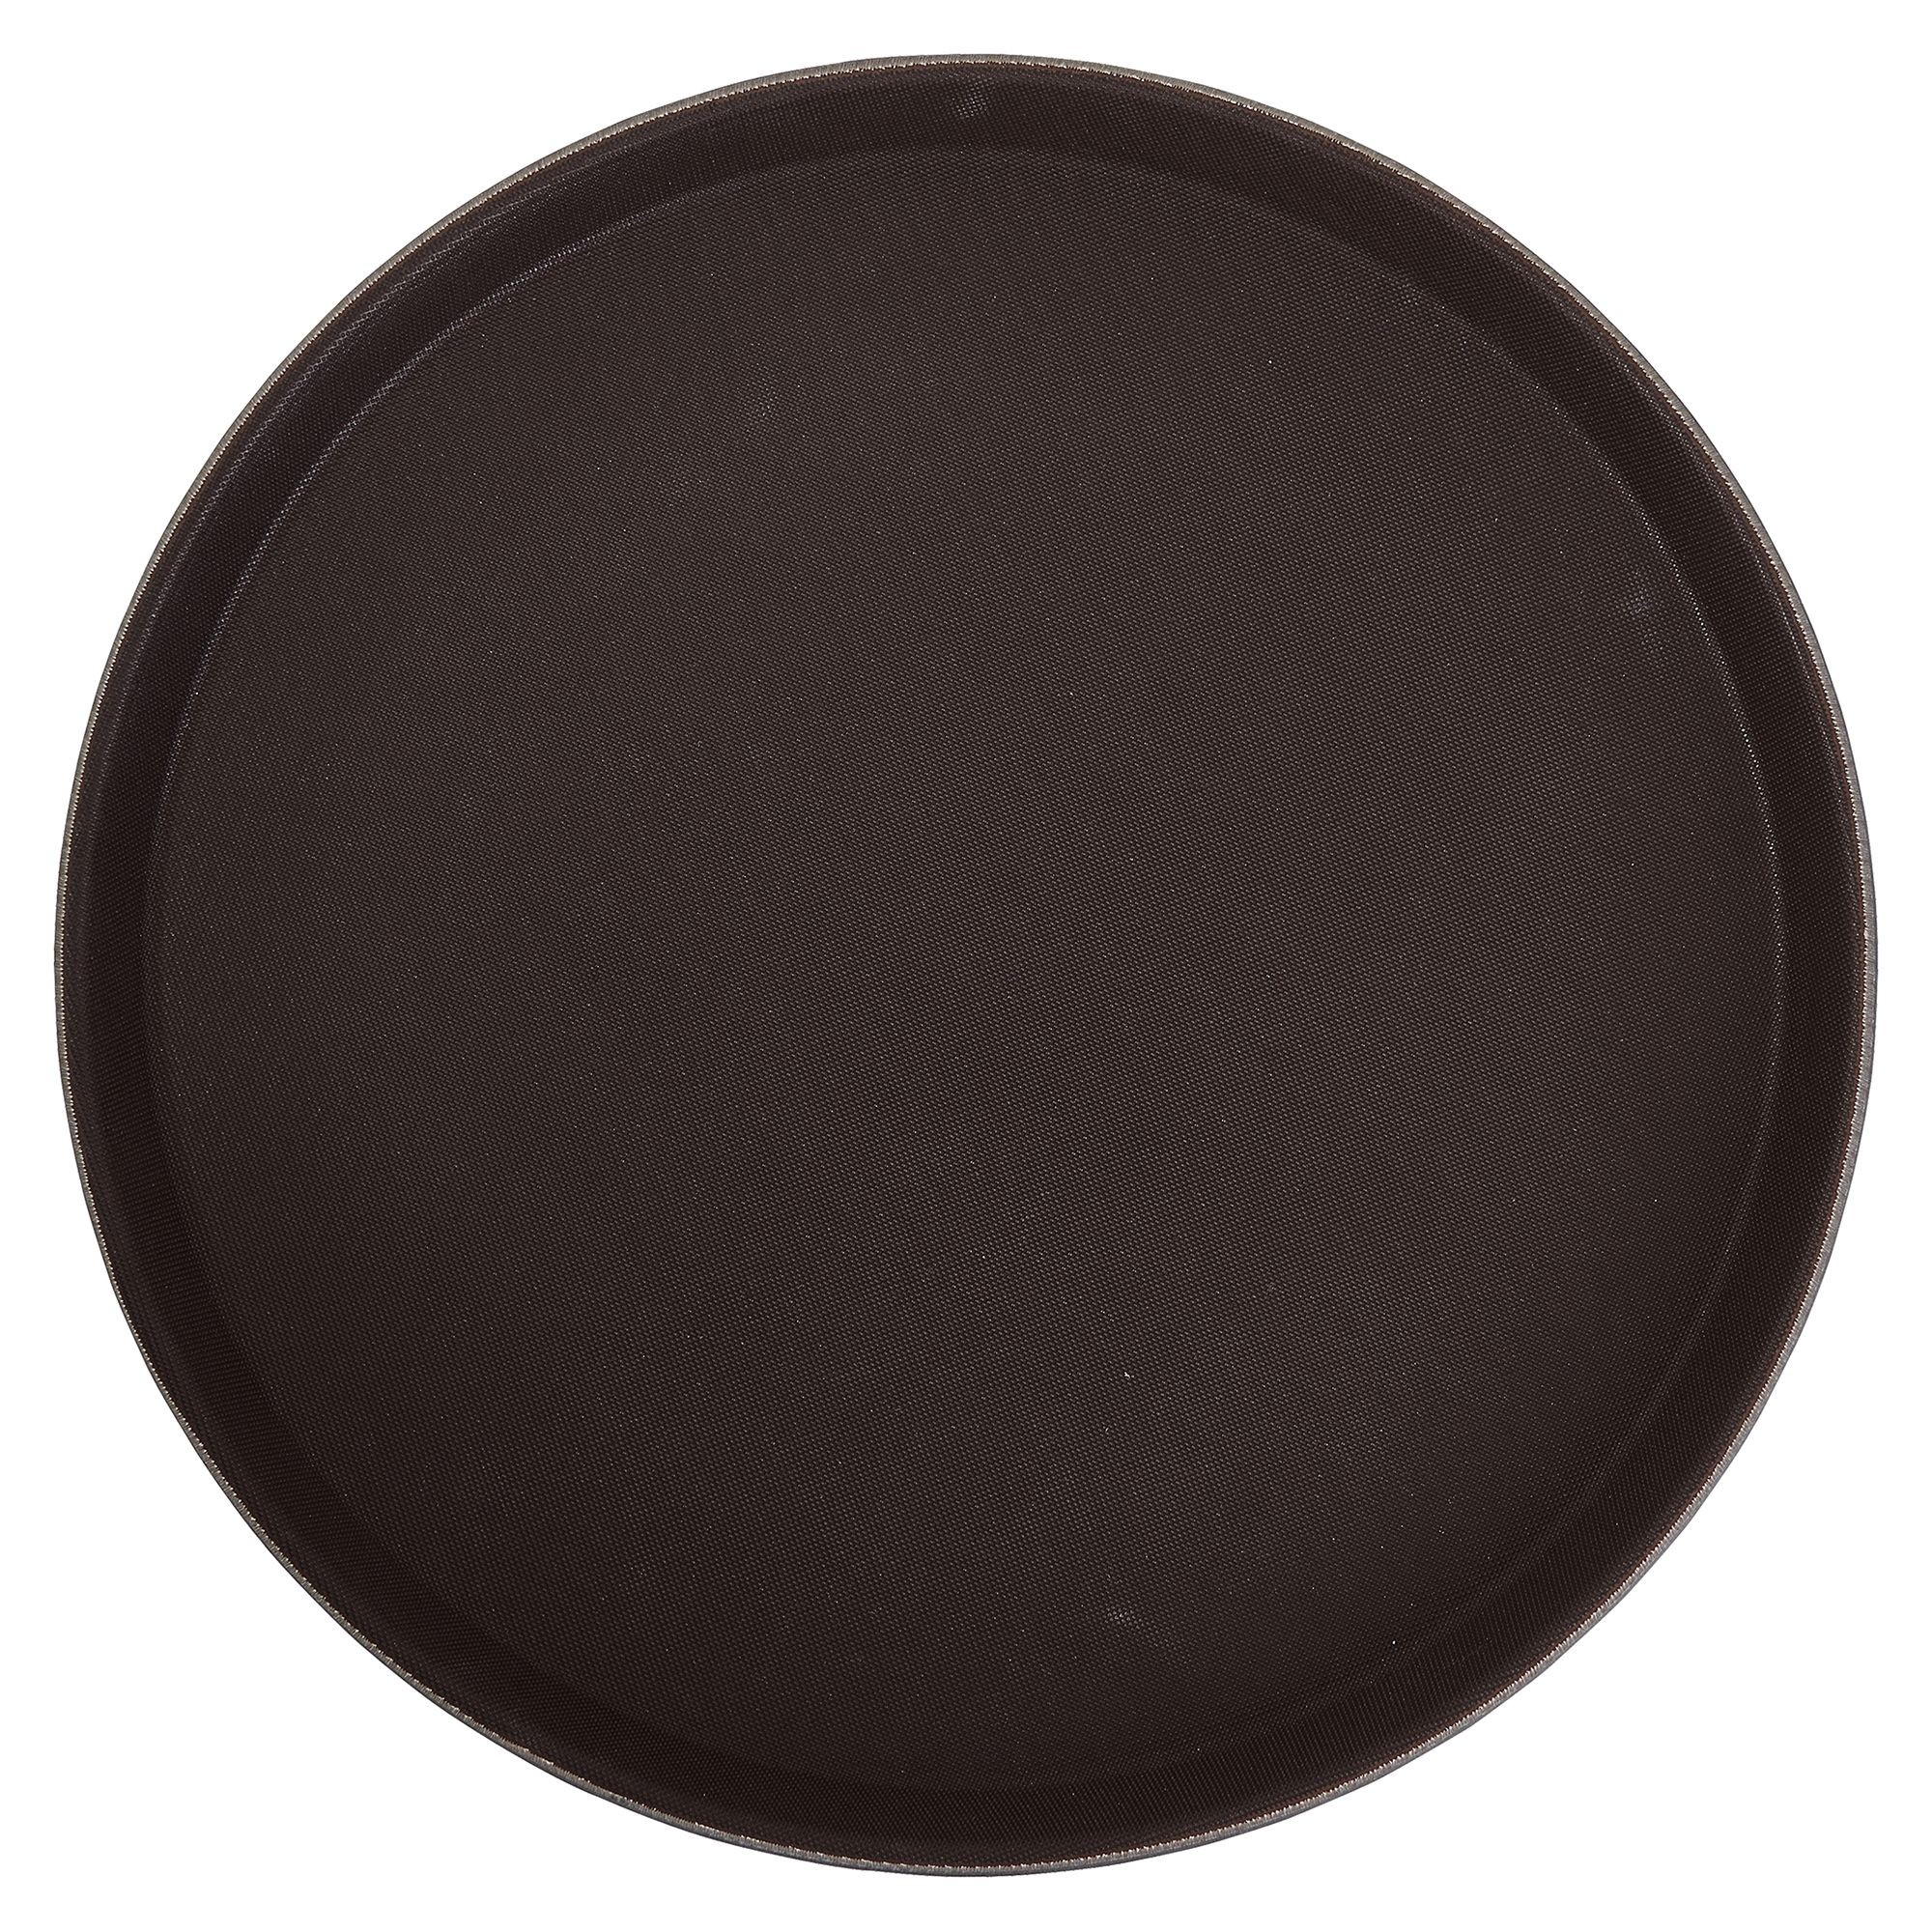 Brown Easy Hold Round Tray - 16 Dia.